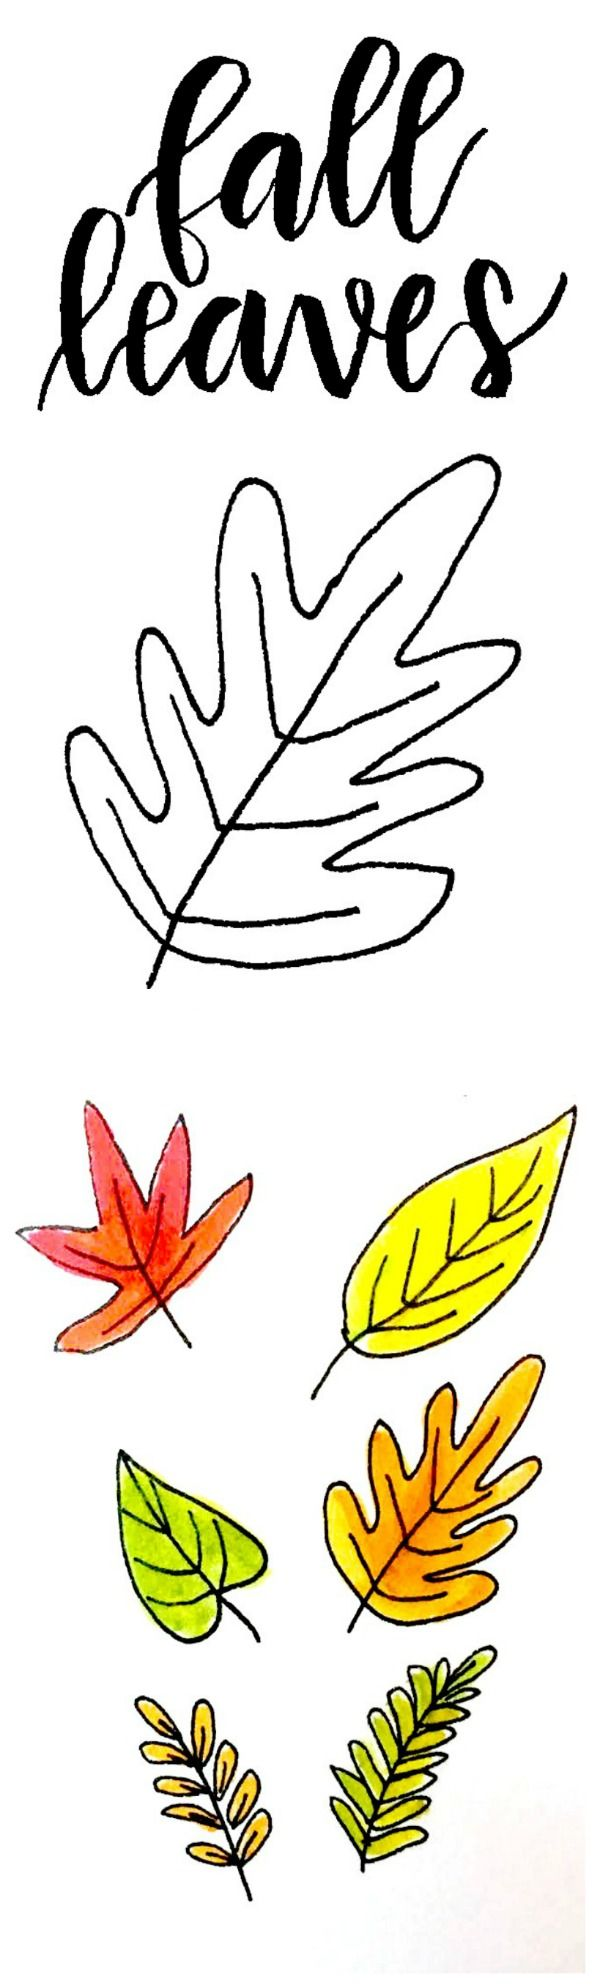 Seven Ways To Draw Fall Leaves Fall Leaves Drawing Fall Drawings Leaf Drawing